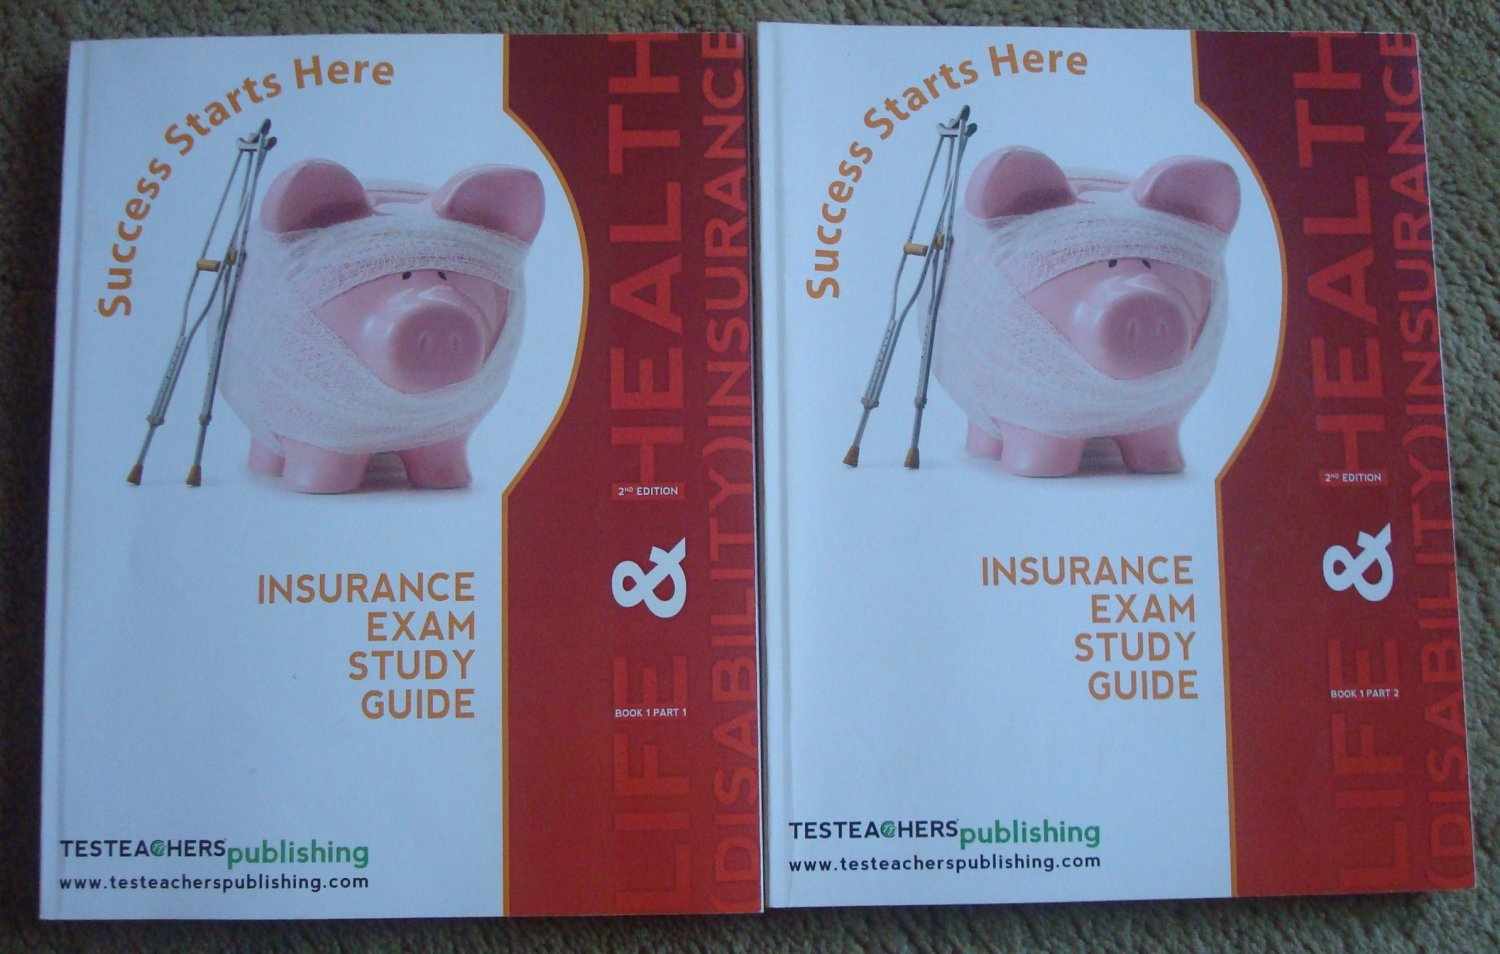 Life & Health (Disability Insurance) Exam Study Guide - 2nd Edition Two Books